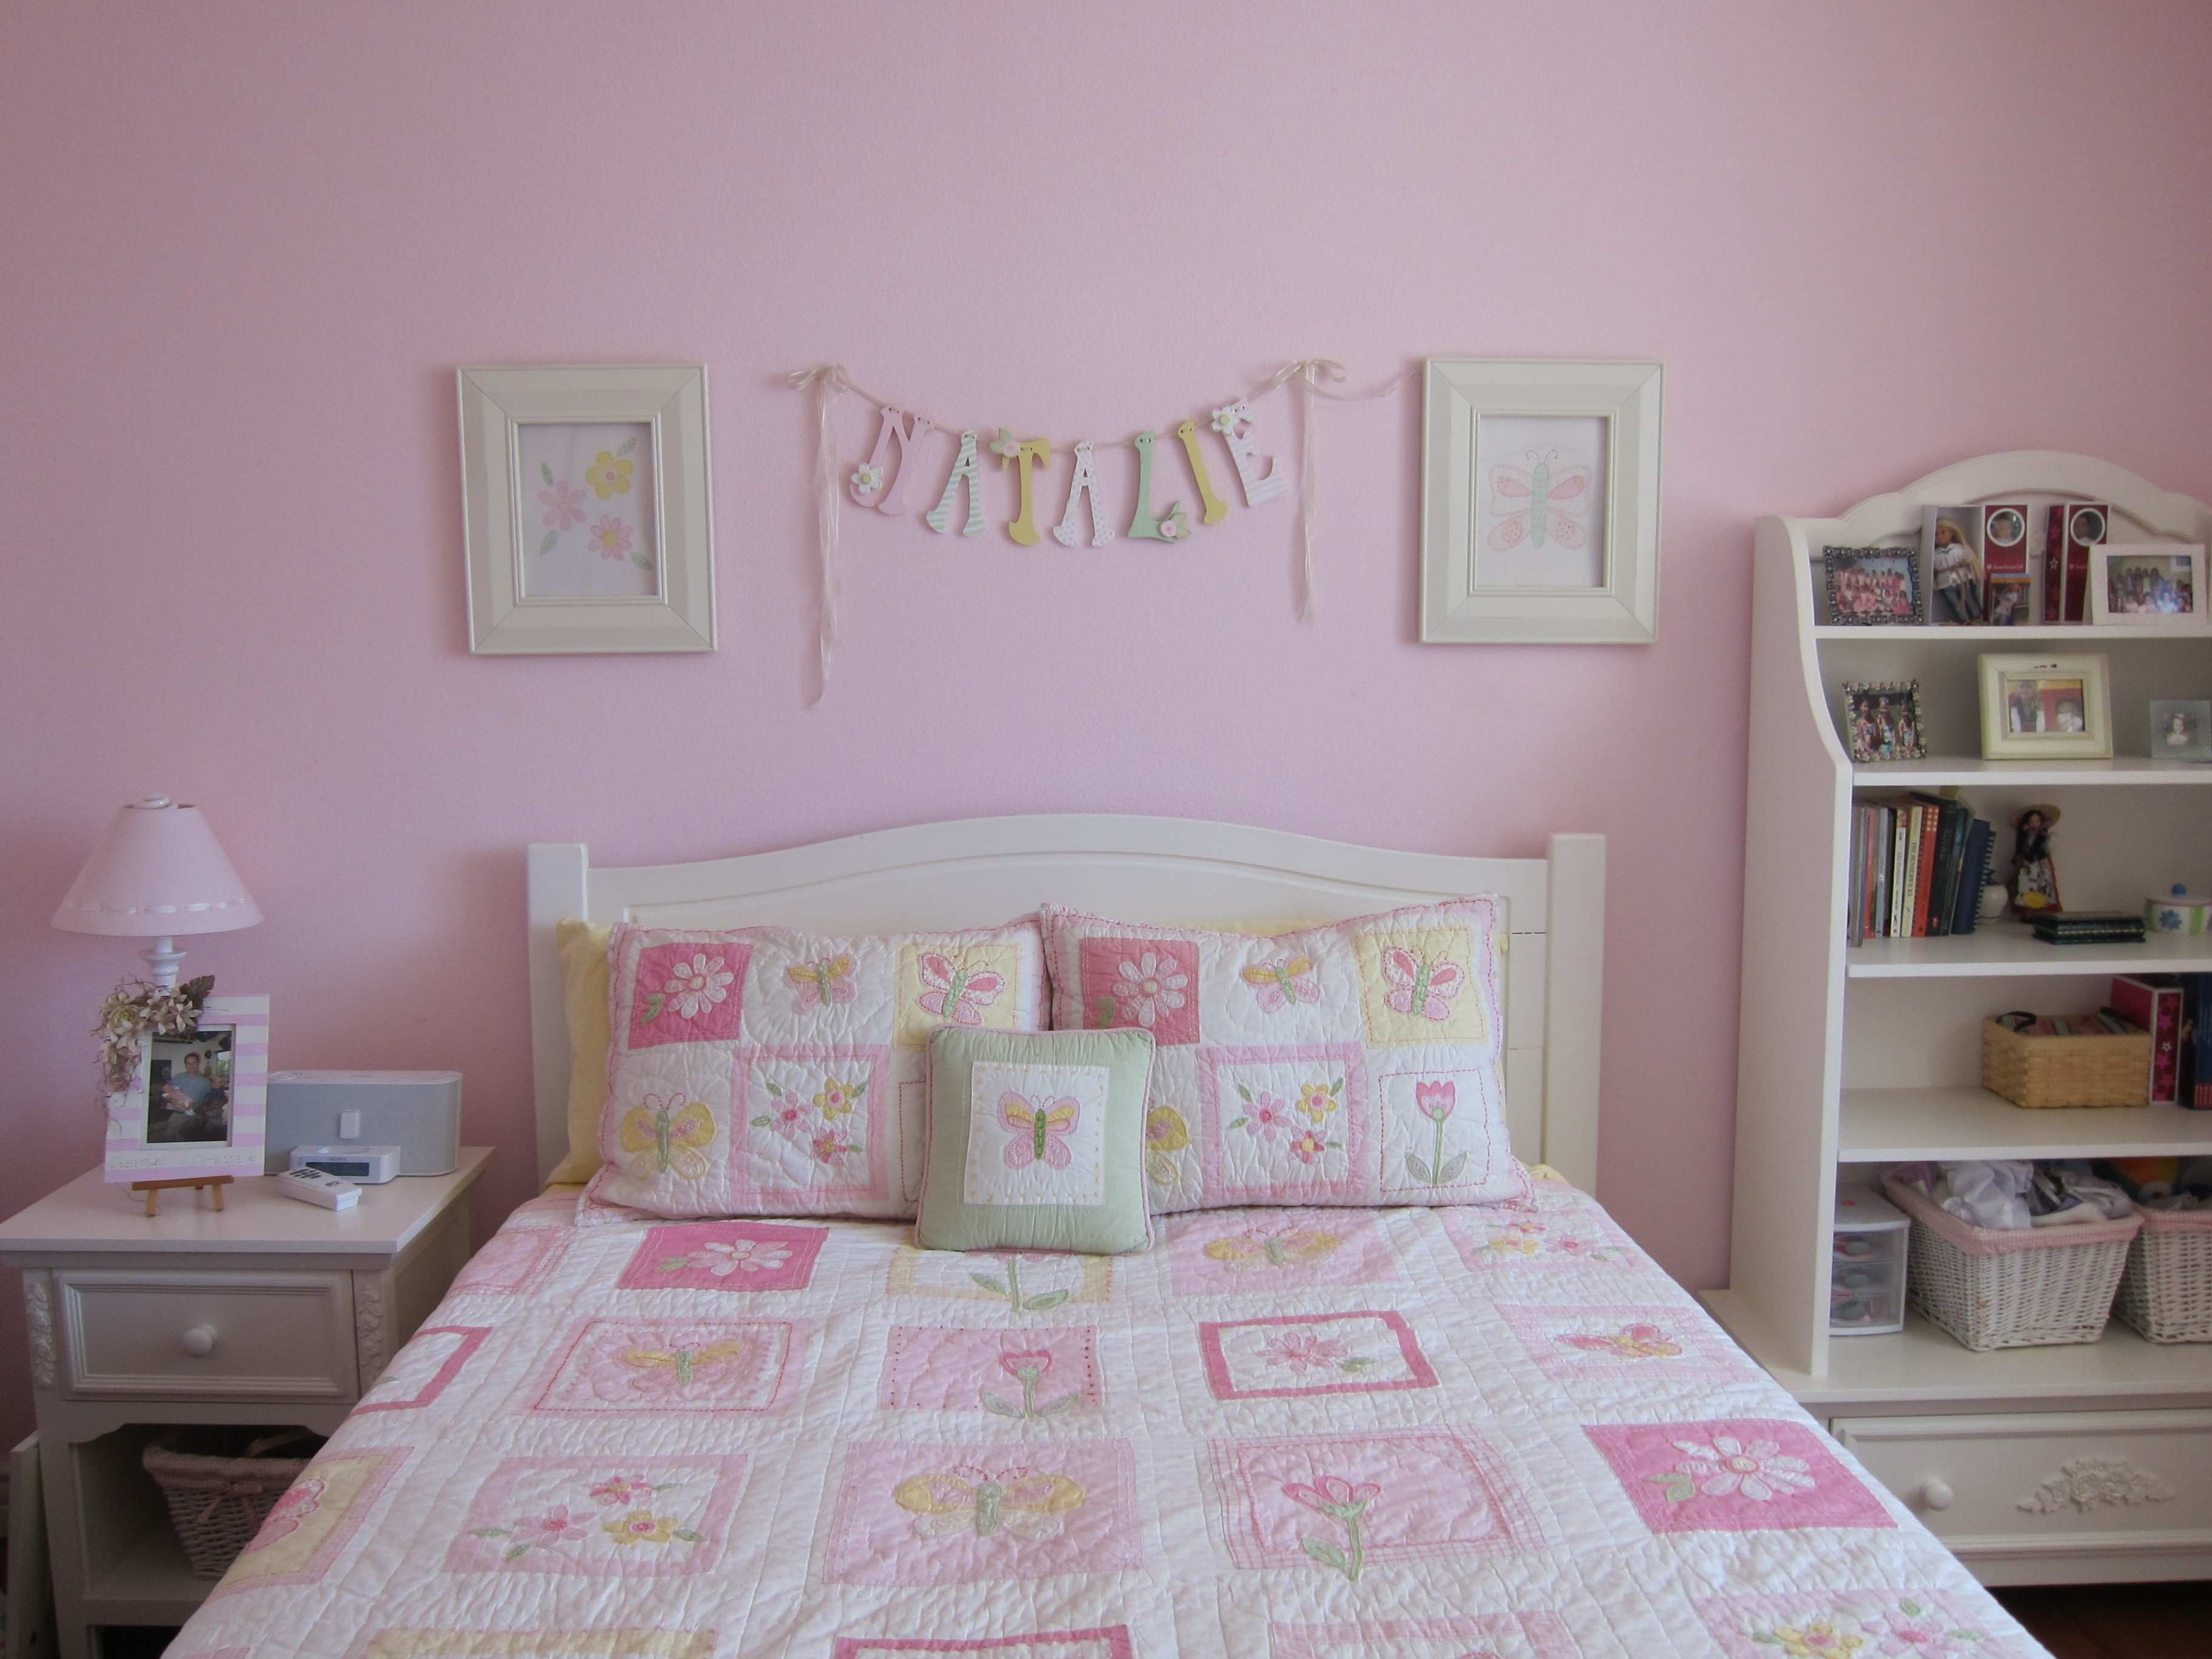 Beautiful Design Homemade Wall Decoration Ideas for Bedroom